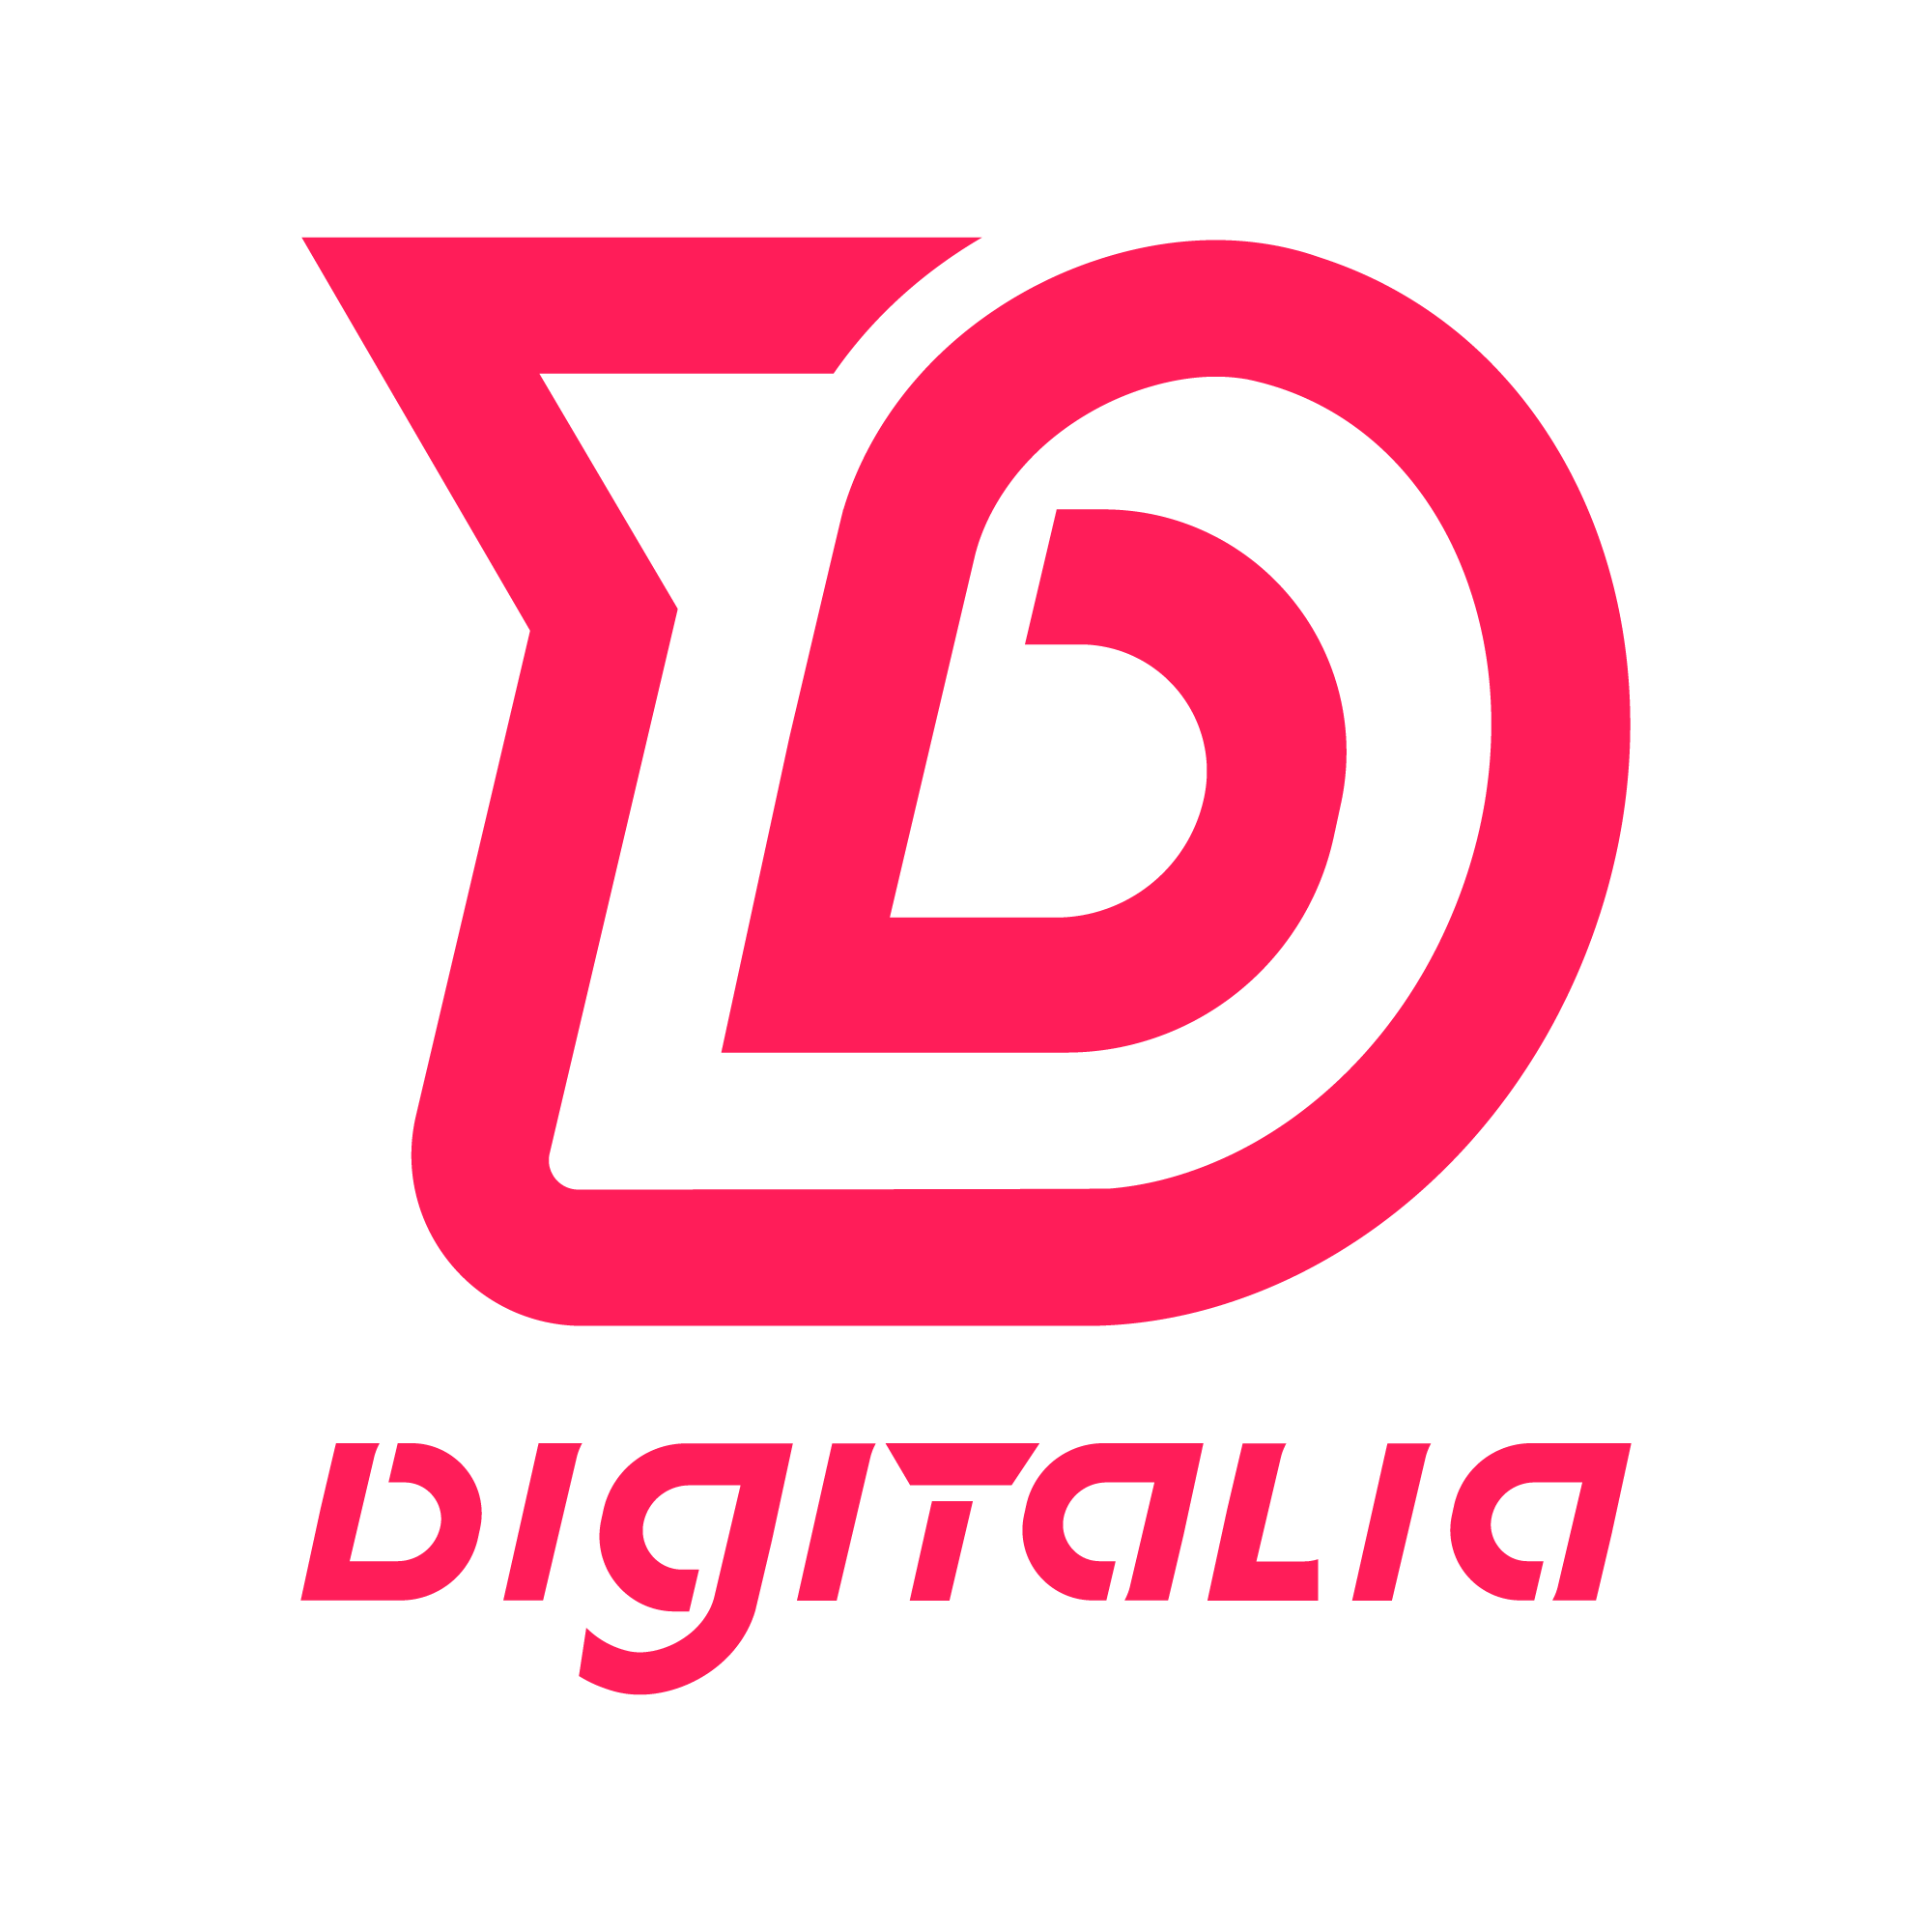 Digitalia - Jacopo Zane